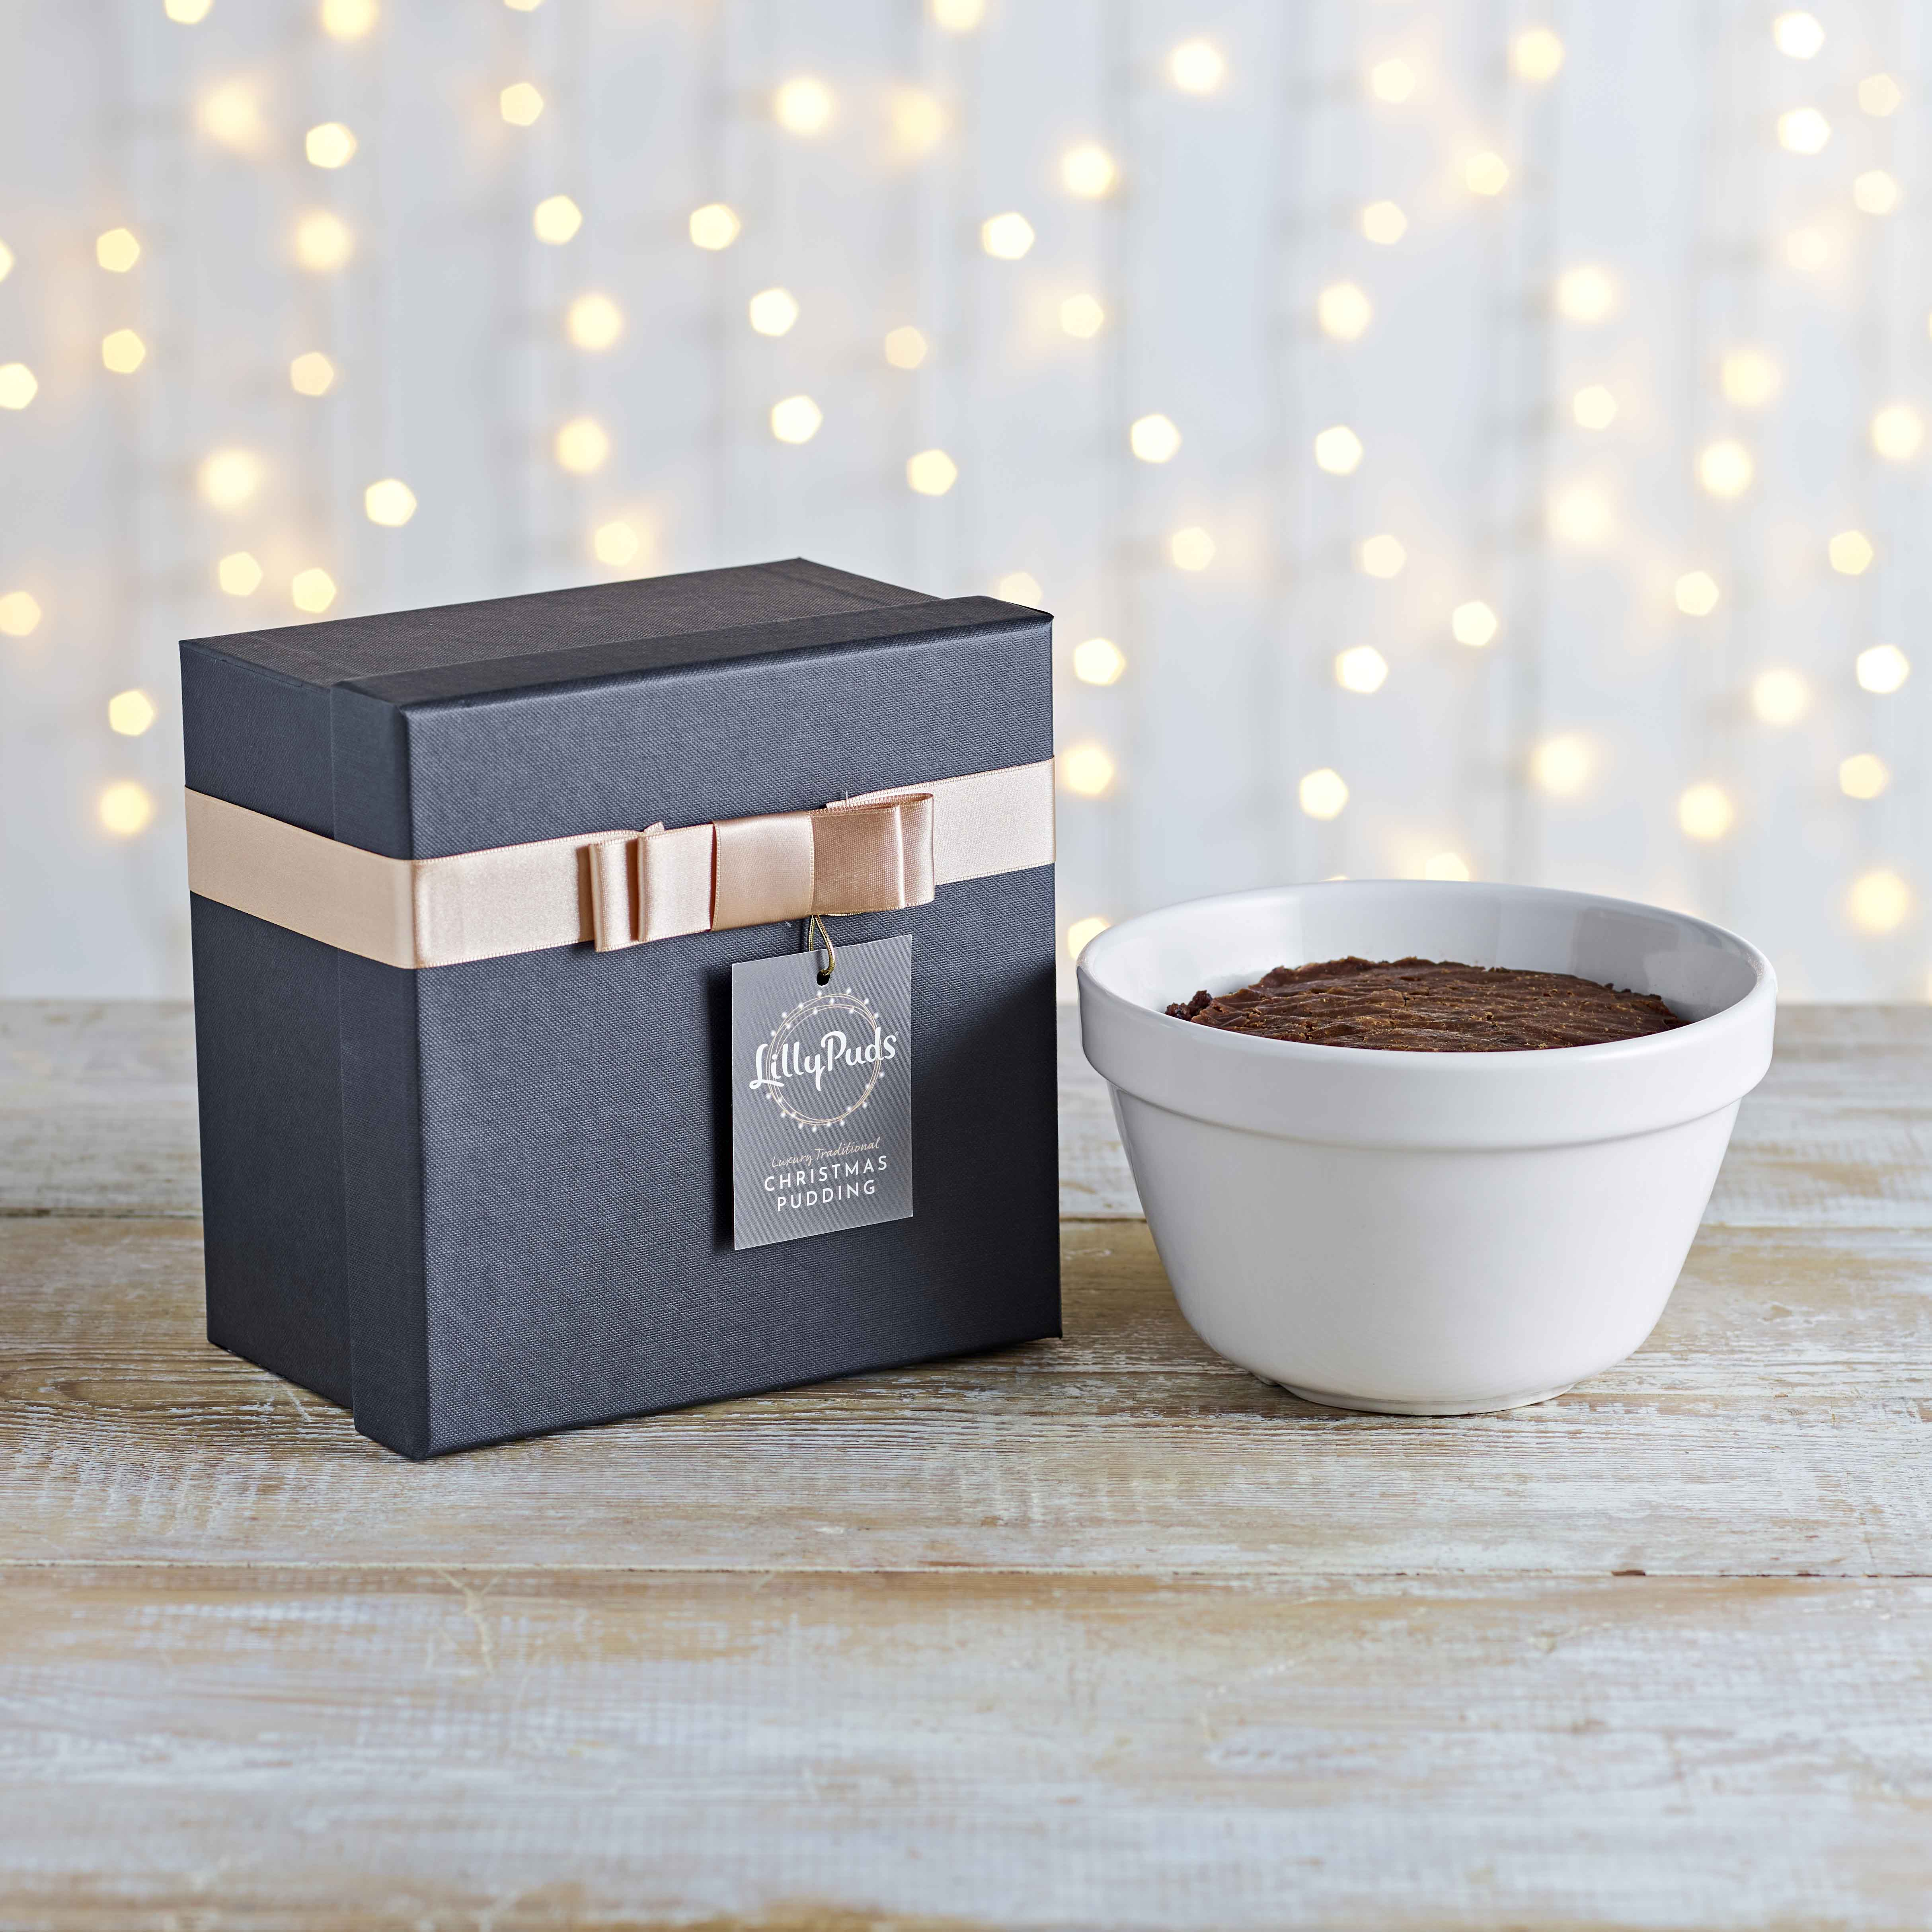 LillyPuds Luxury Christmas Pudding Laced with Brandy in Ceramic Pot, 908g